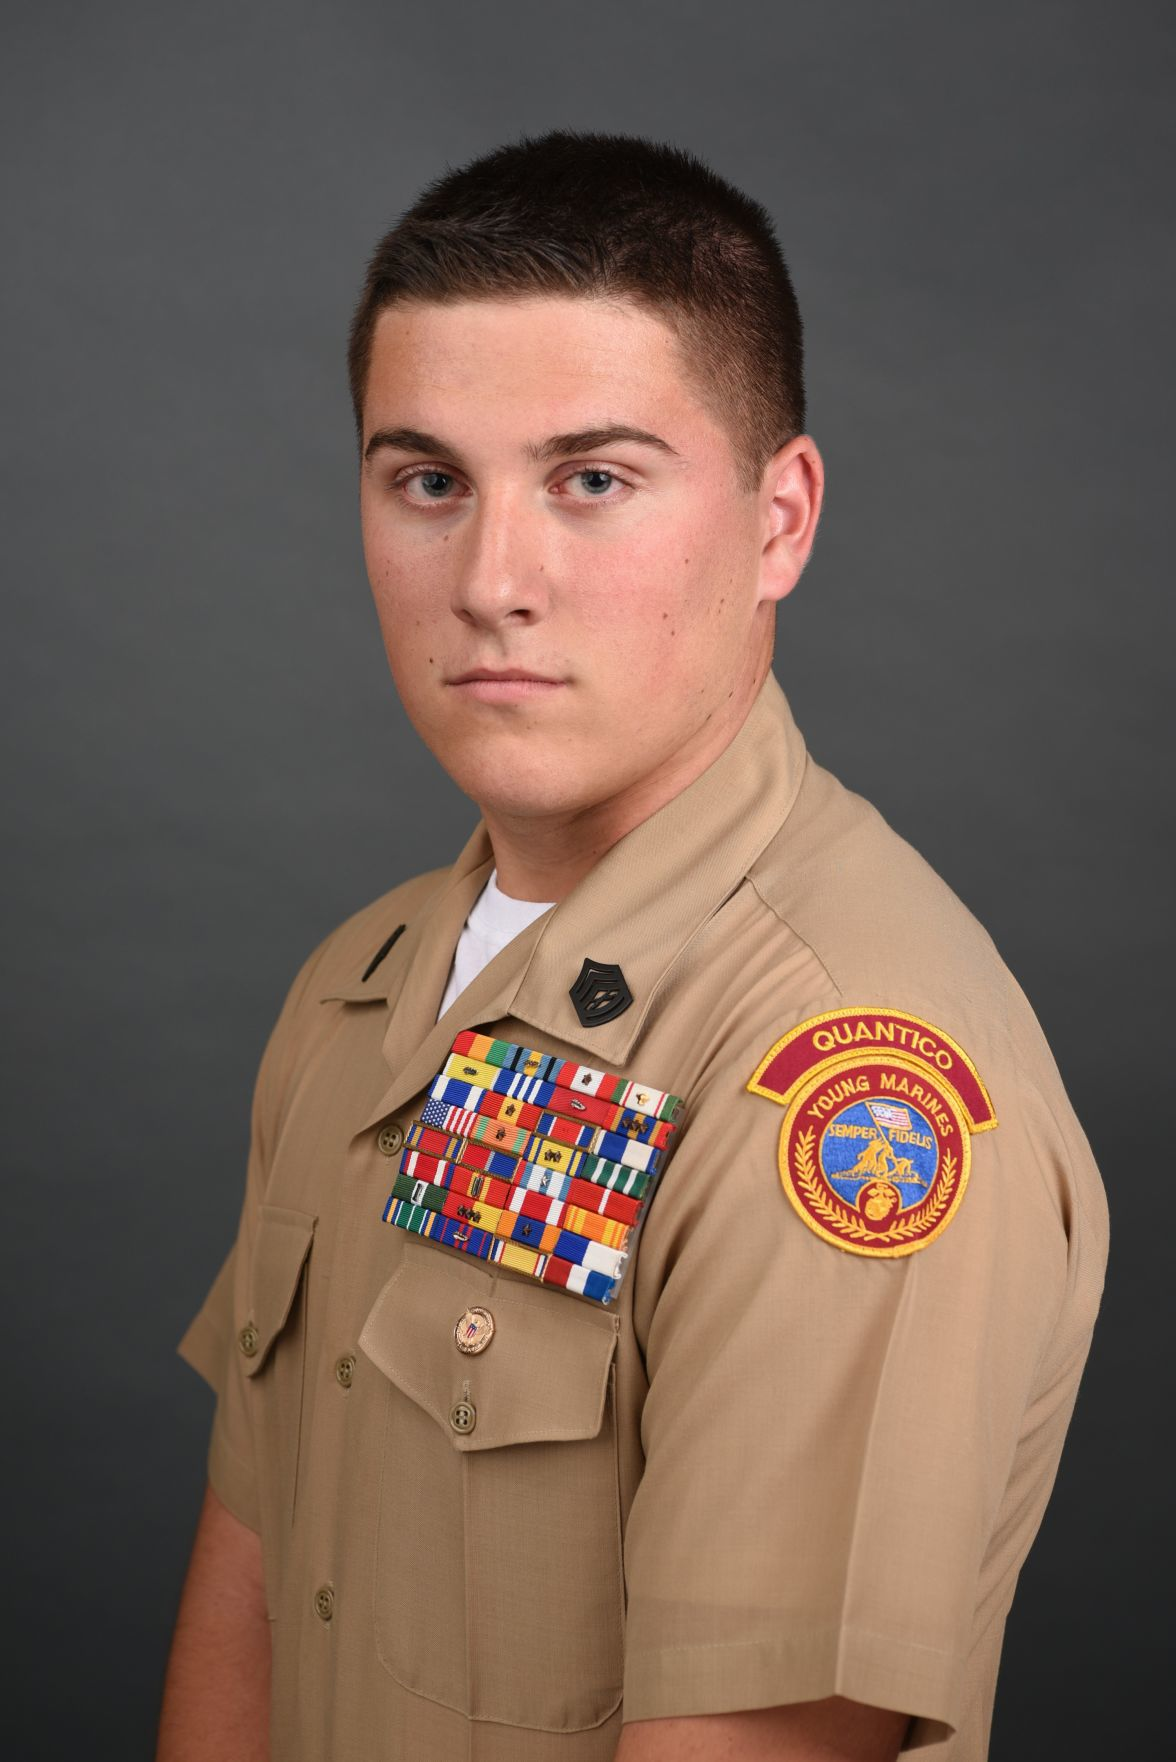 Nathaniel Paredes - 'Young Marine of the Year' for Division 2